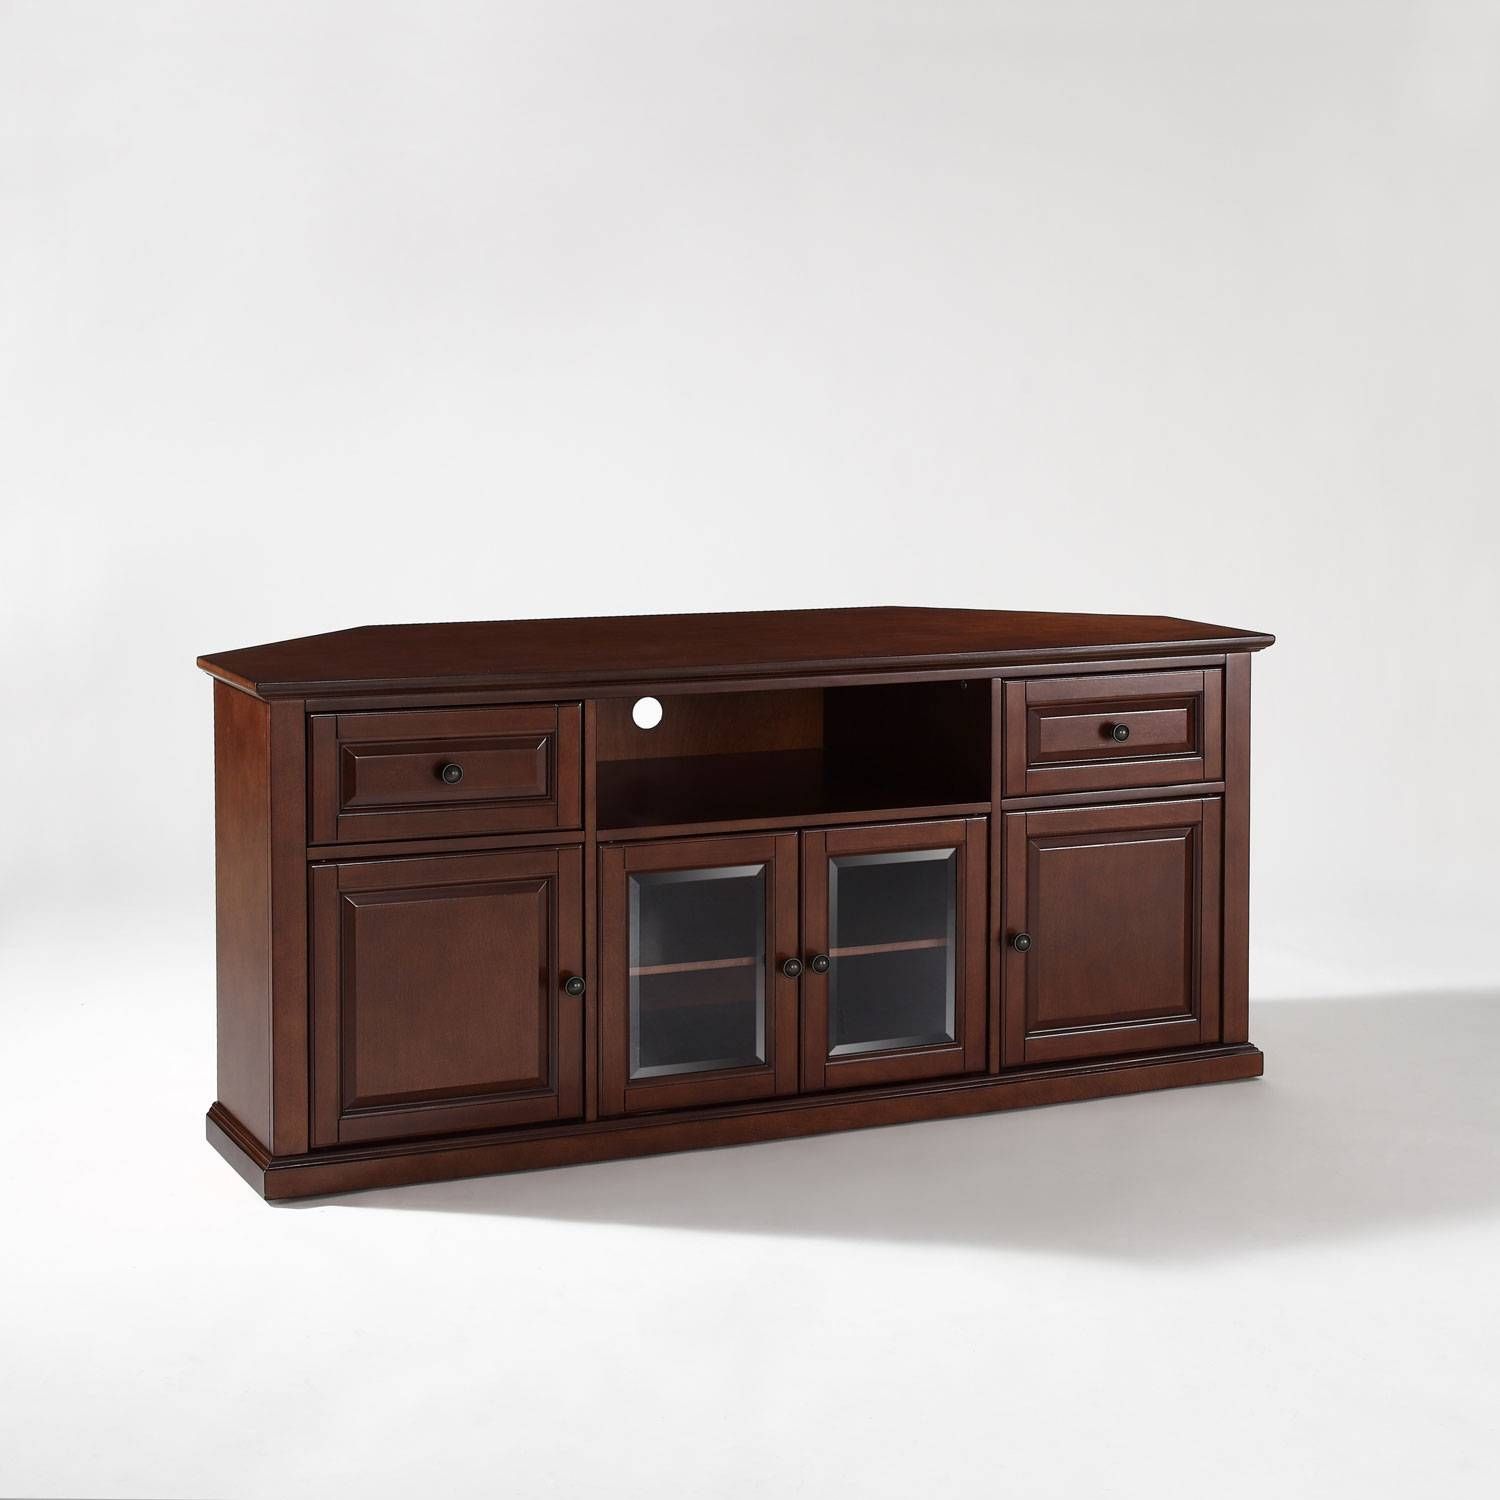 60 Inch Corner Tv Stand In Vintage Mahogany Crosley Furniture For Corner Tv Stands With Drawers (View 6 of 15)